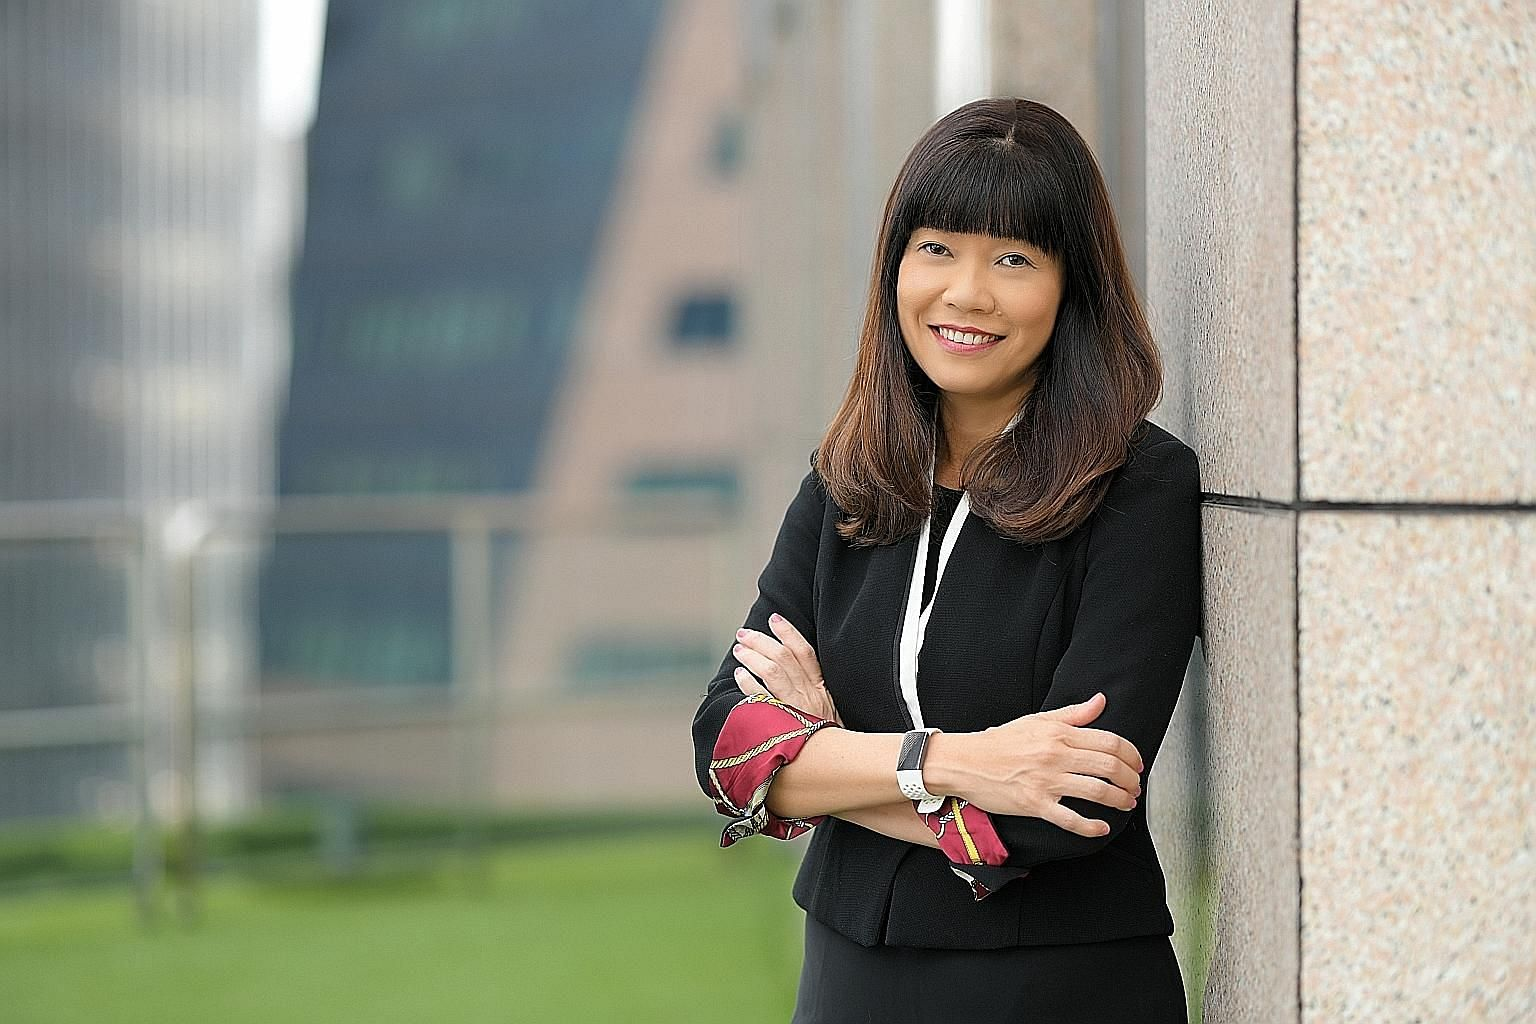 AIA Singapore chief executive Wong Sze Keed says the AIA Financial Career Scheme 2020 will give participants the necessary skills to kick-start their careers in the financial sector. Applicants who meet the requirements will be enrolled progressively